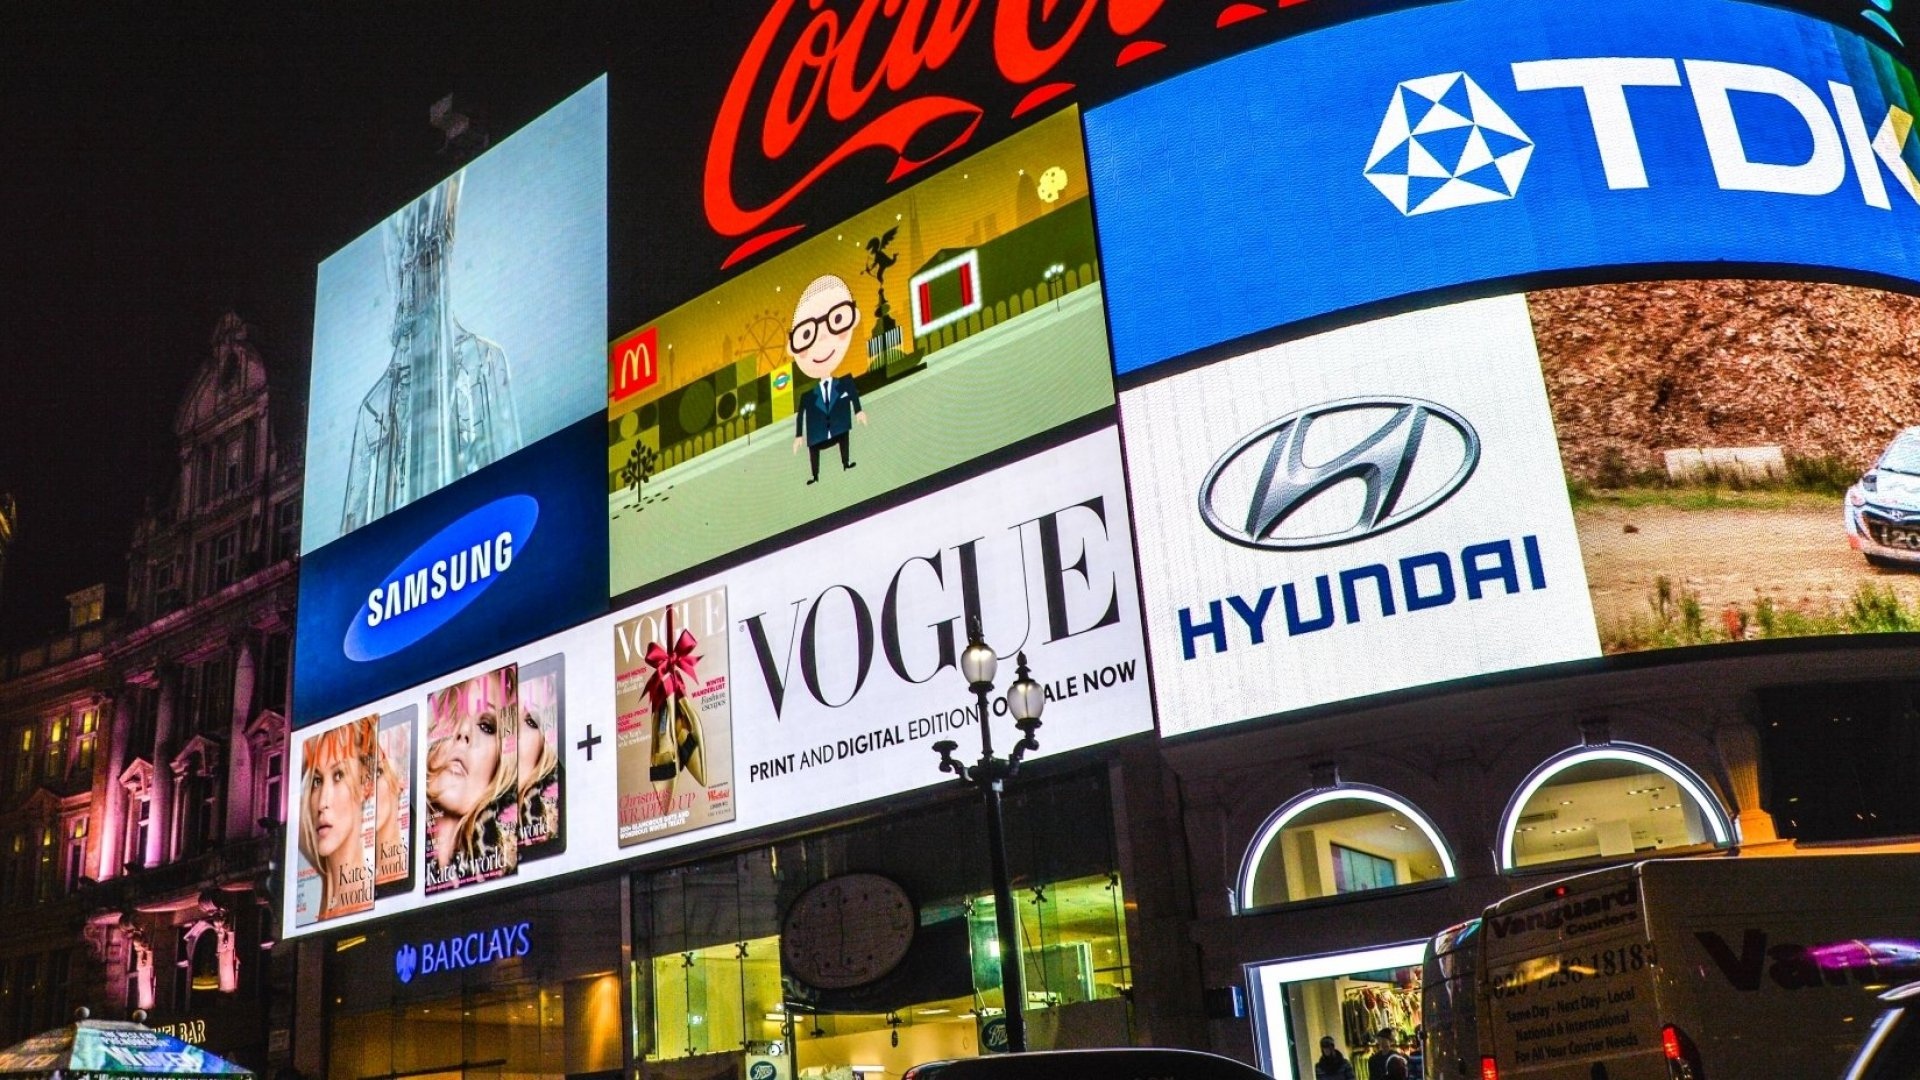 96 Percentof Consumers Don't Trust Ads. Here's How to Sell Your Product Without Coming Off Sleazy